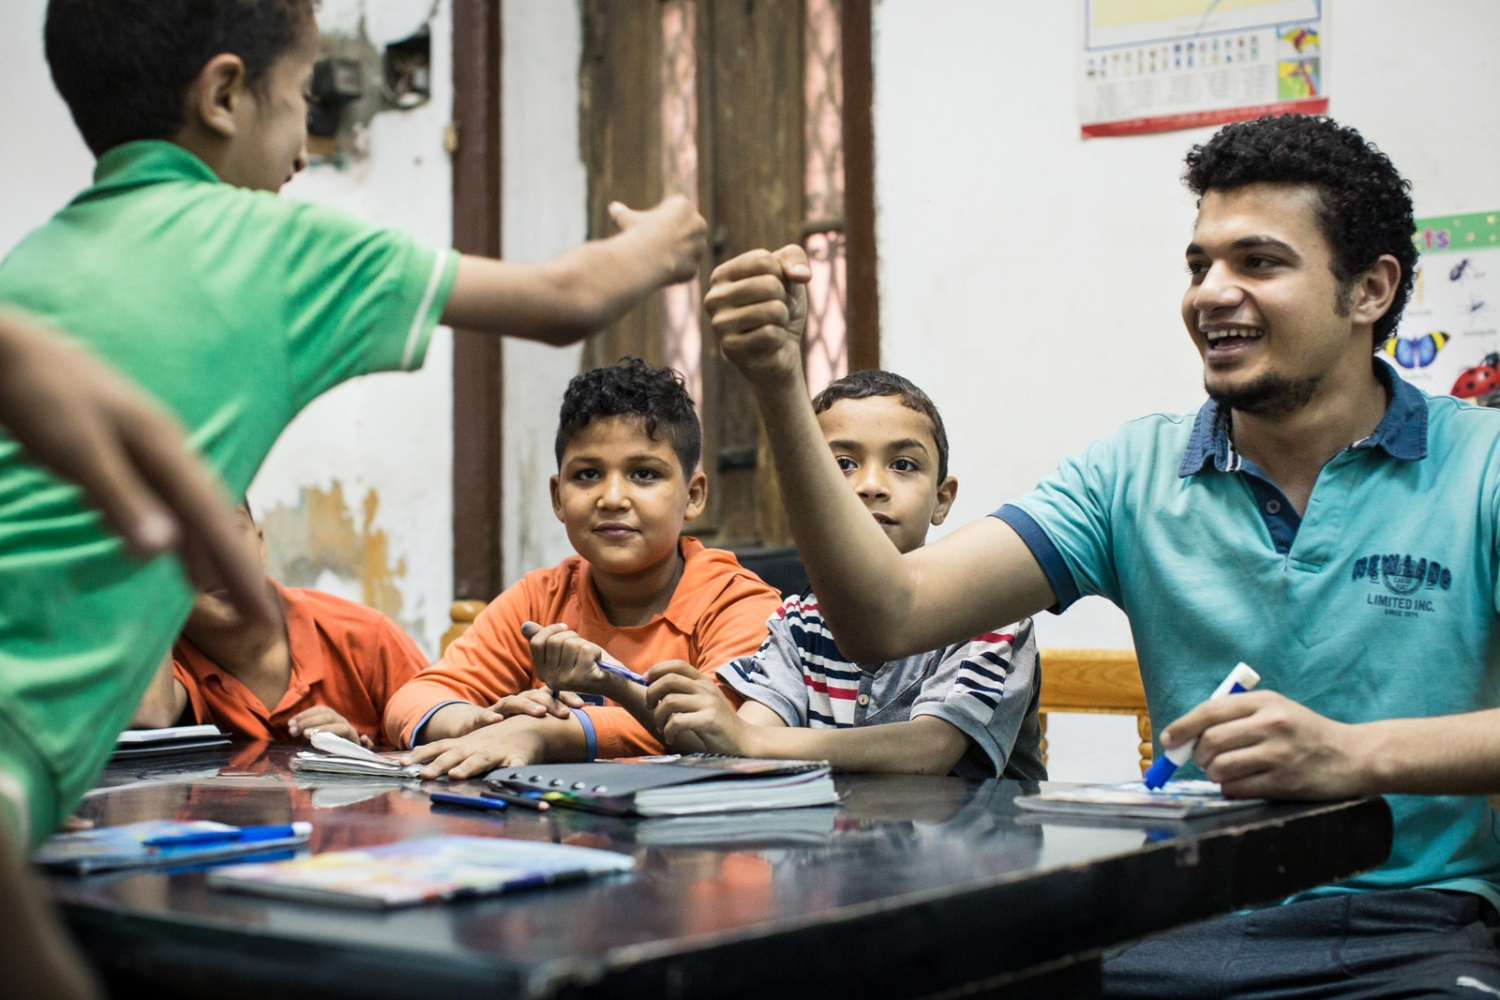 p.p1 {margin: 0.0px 0.0px 0.0px 0.0px; font: 10.0px 'Lucida Grande'} Mostafa fist-bumps a student when he gets the right answer during French class. Mish Madrasa is a grassroots volunteer group that provides tutoring and after school activities to poor children in Saft el Laban, a slum neighborhood of Cairo.